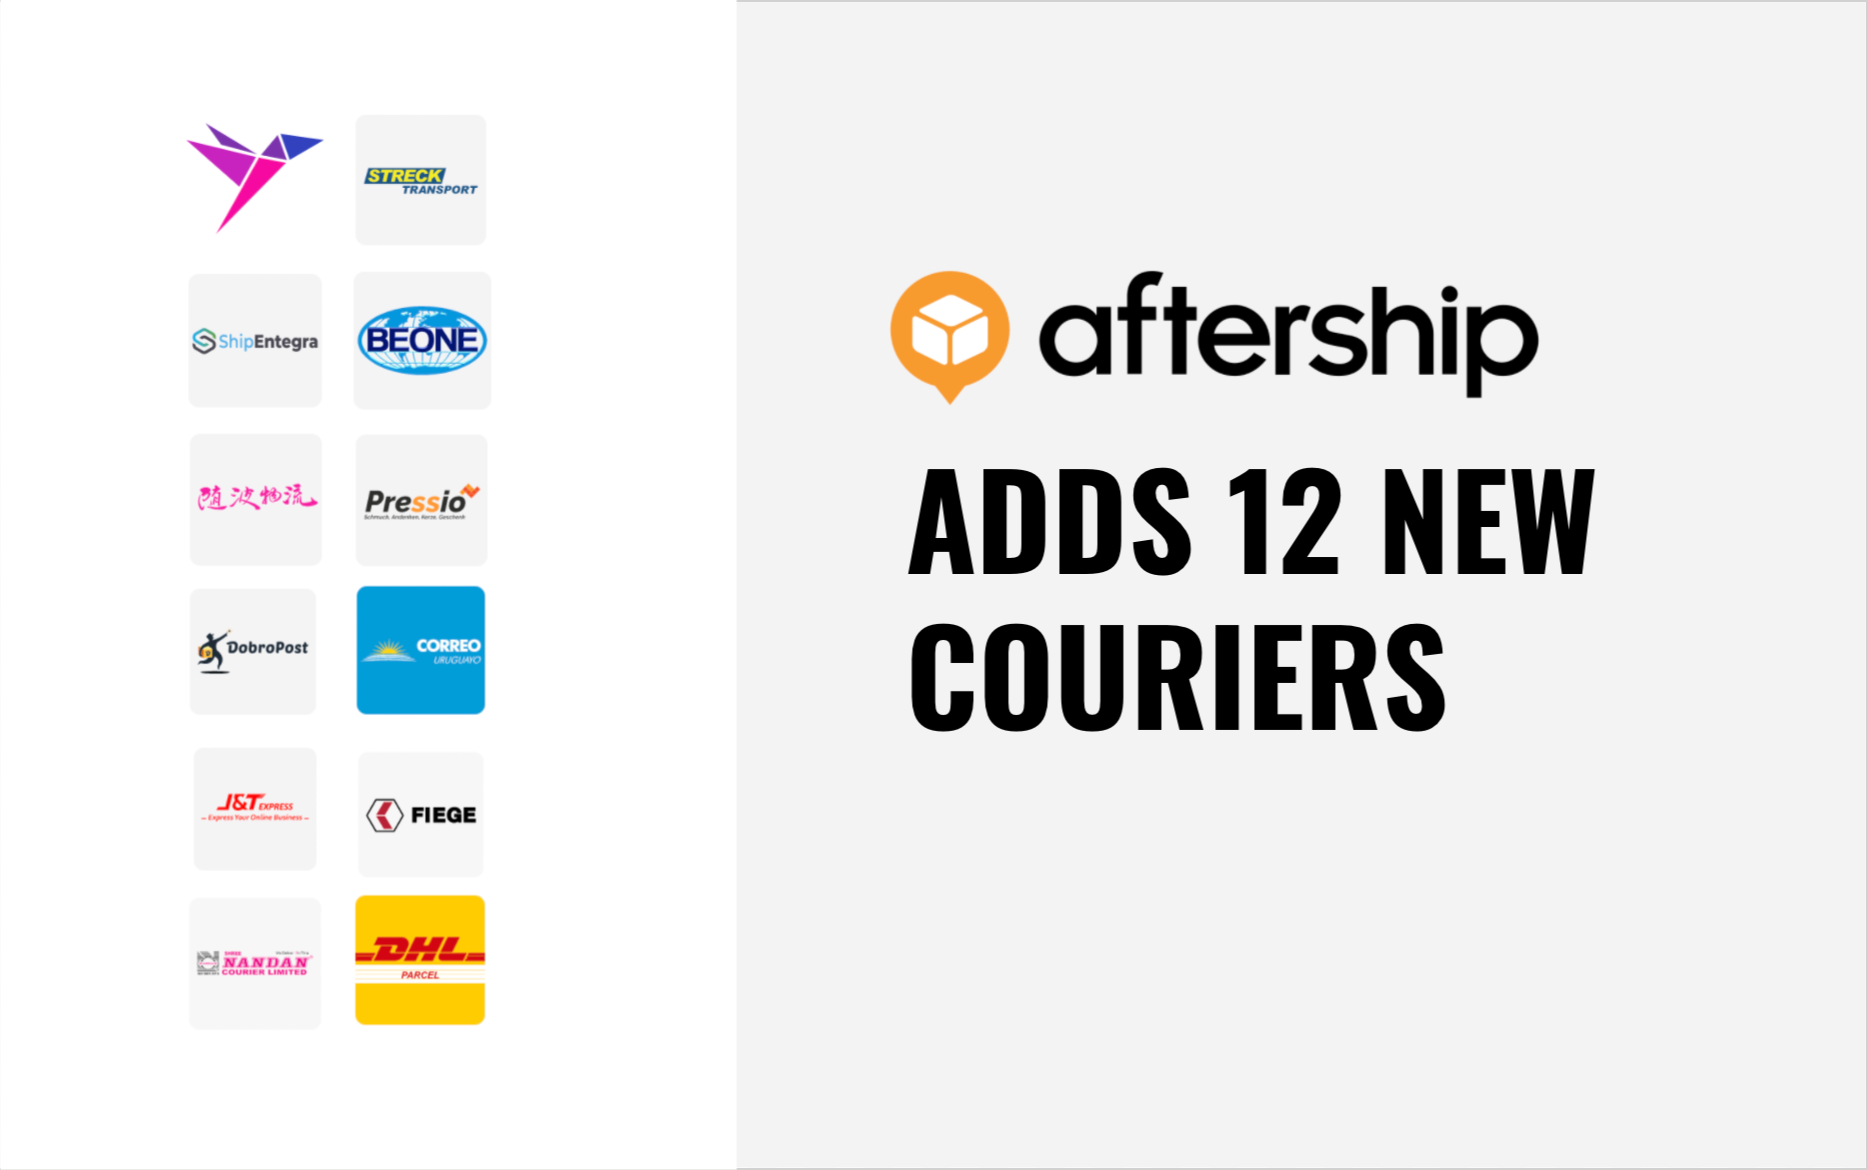 AfterShip adds 12 new couriers this week (15th May 2021 to 30th May 2021)